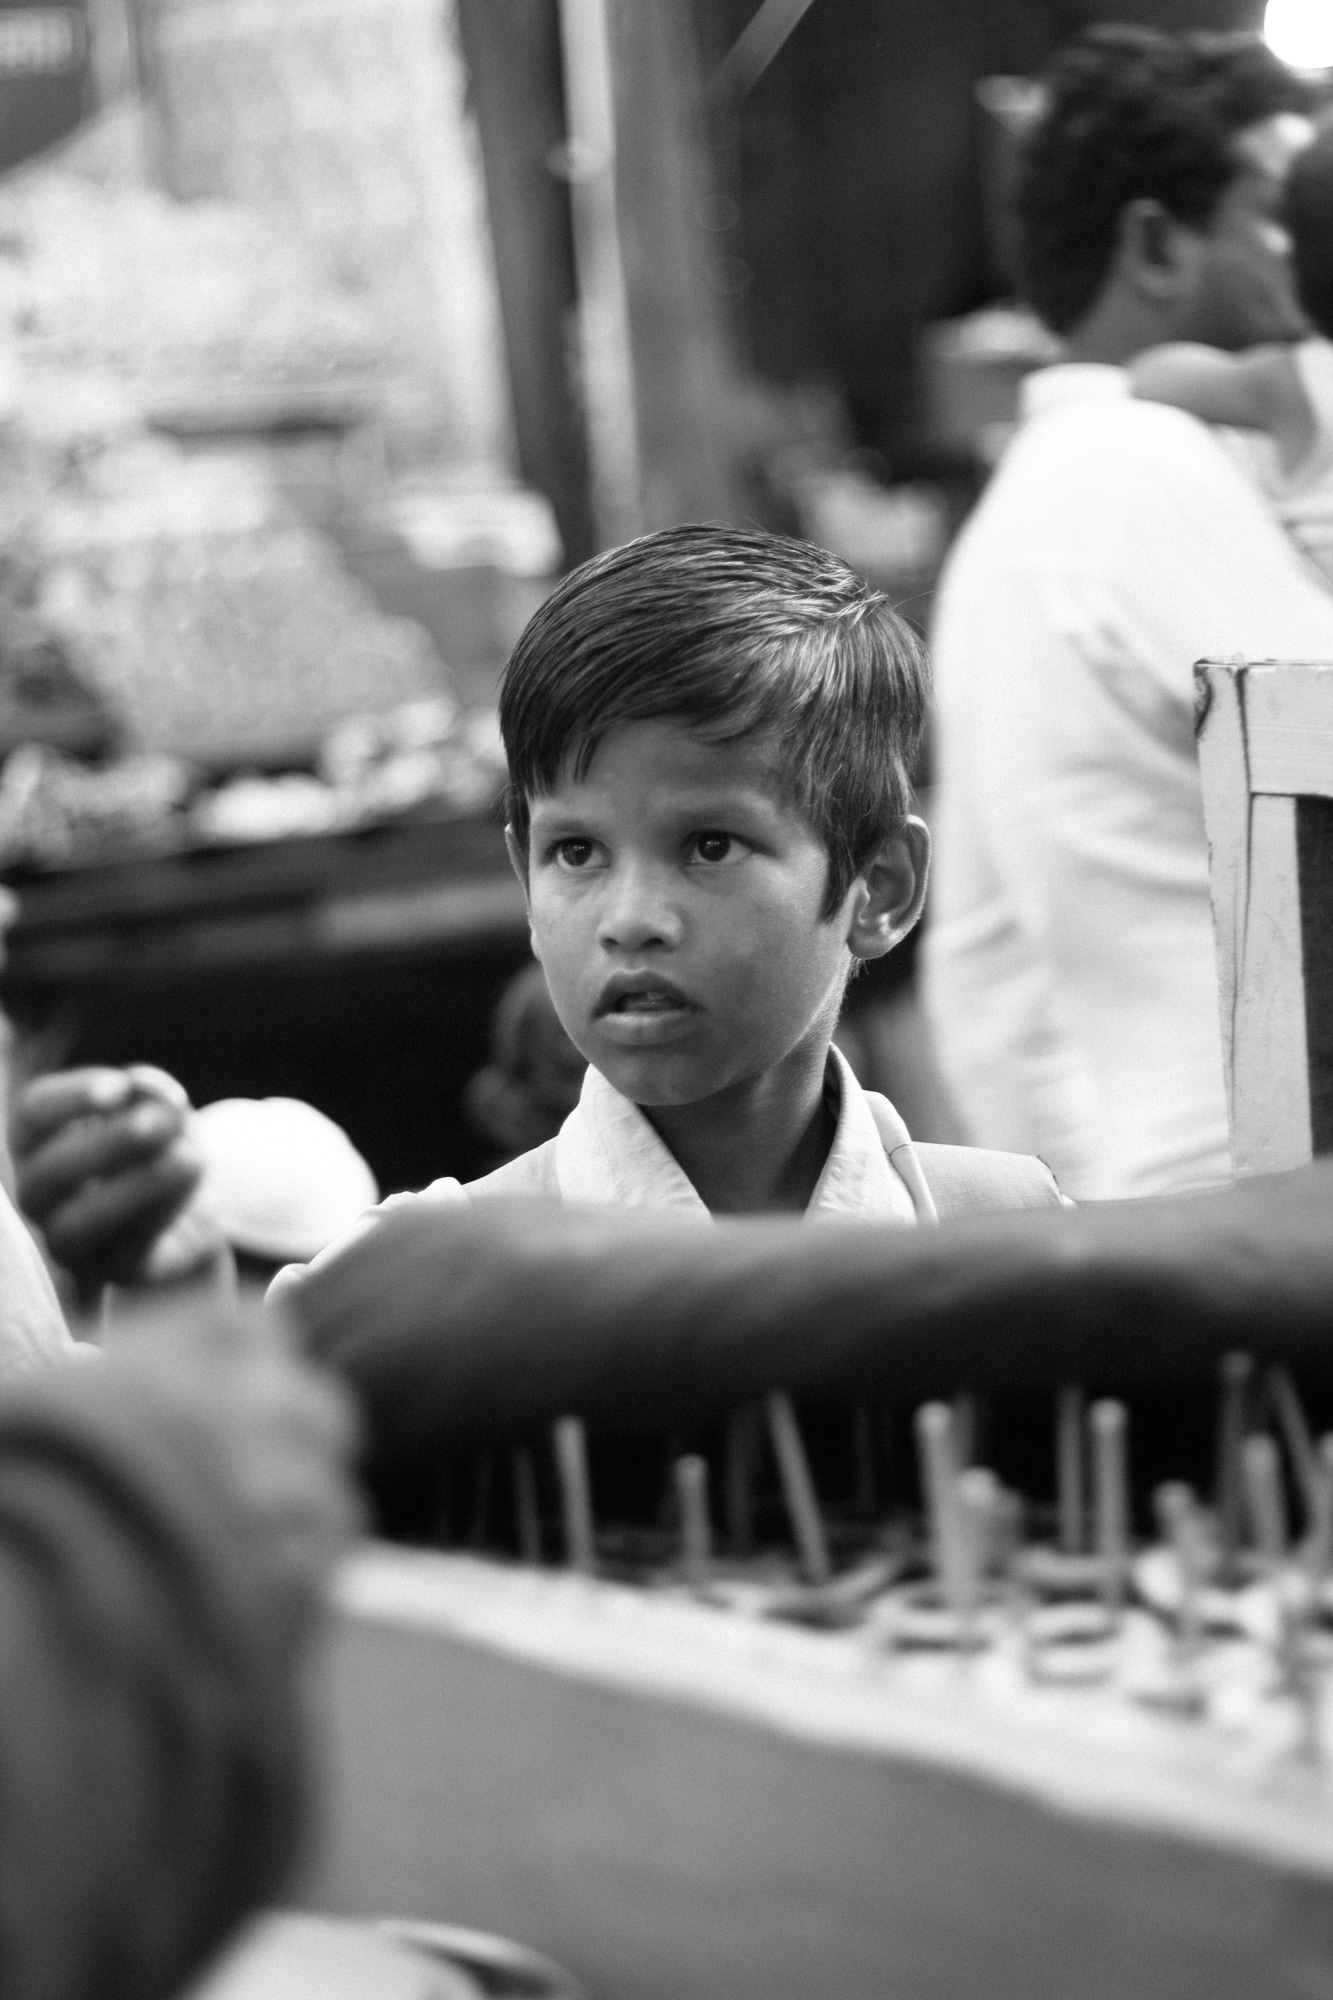 A boy returning from school stops to buy a kulfi.